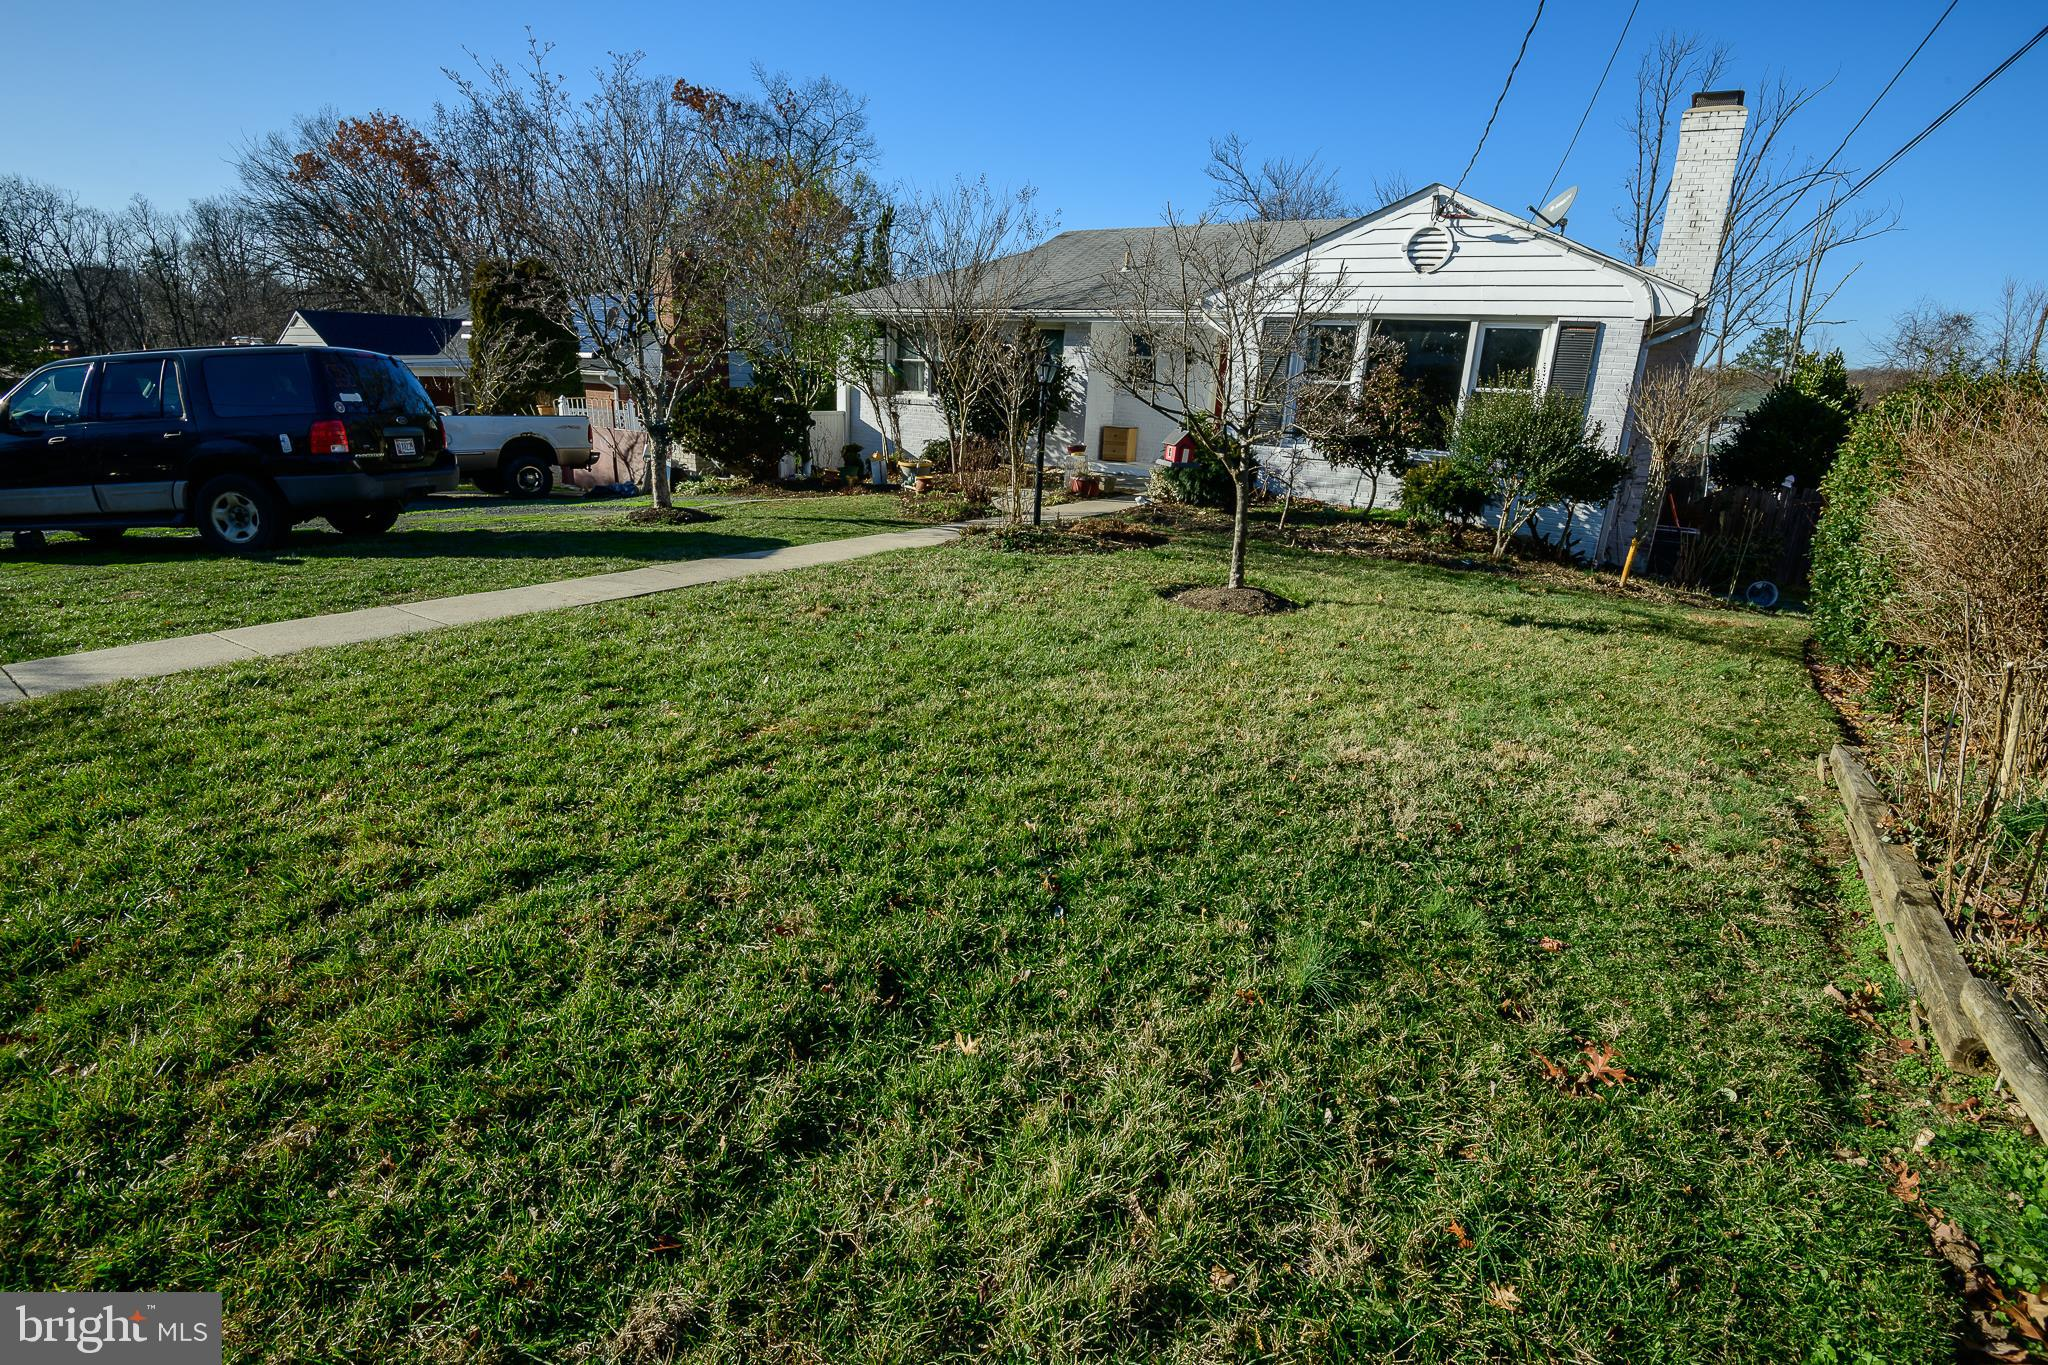 2010 FOREST HILL DRIVE, SILVER SPRING, MD 20903